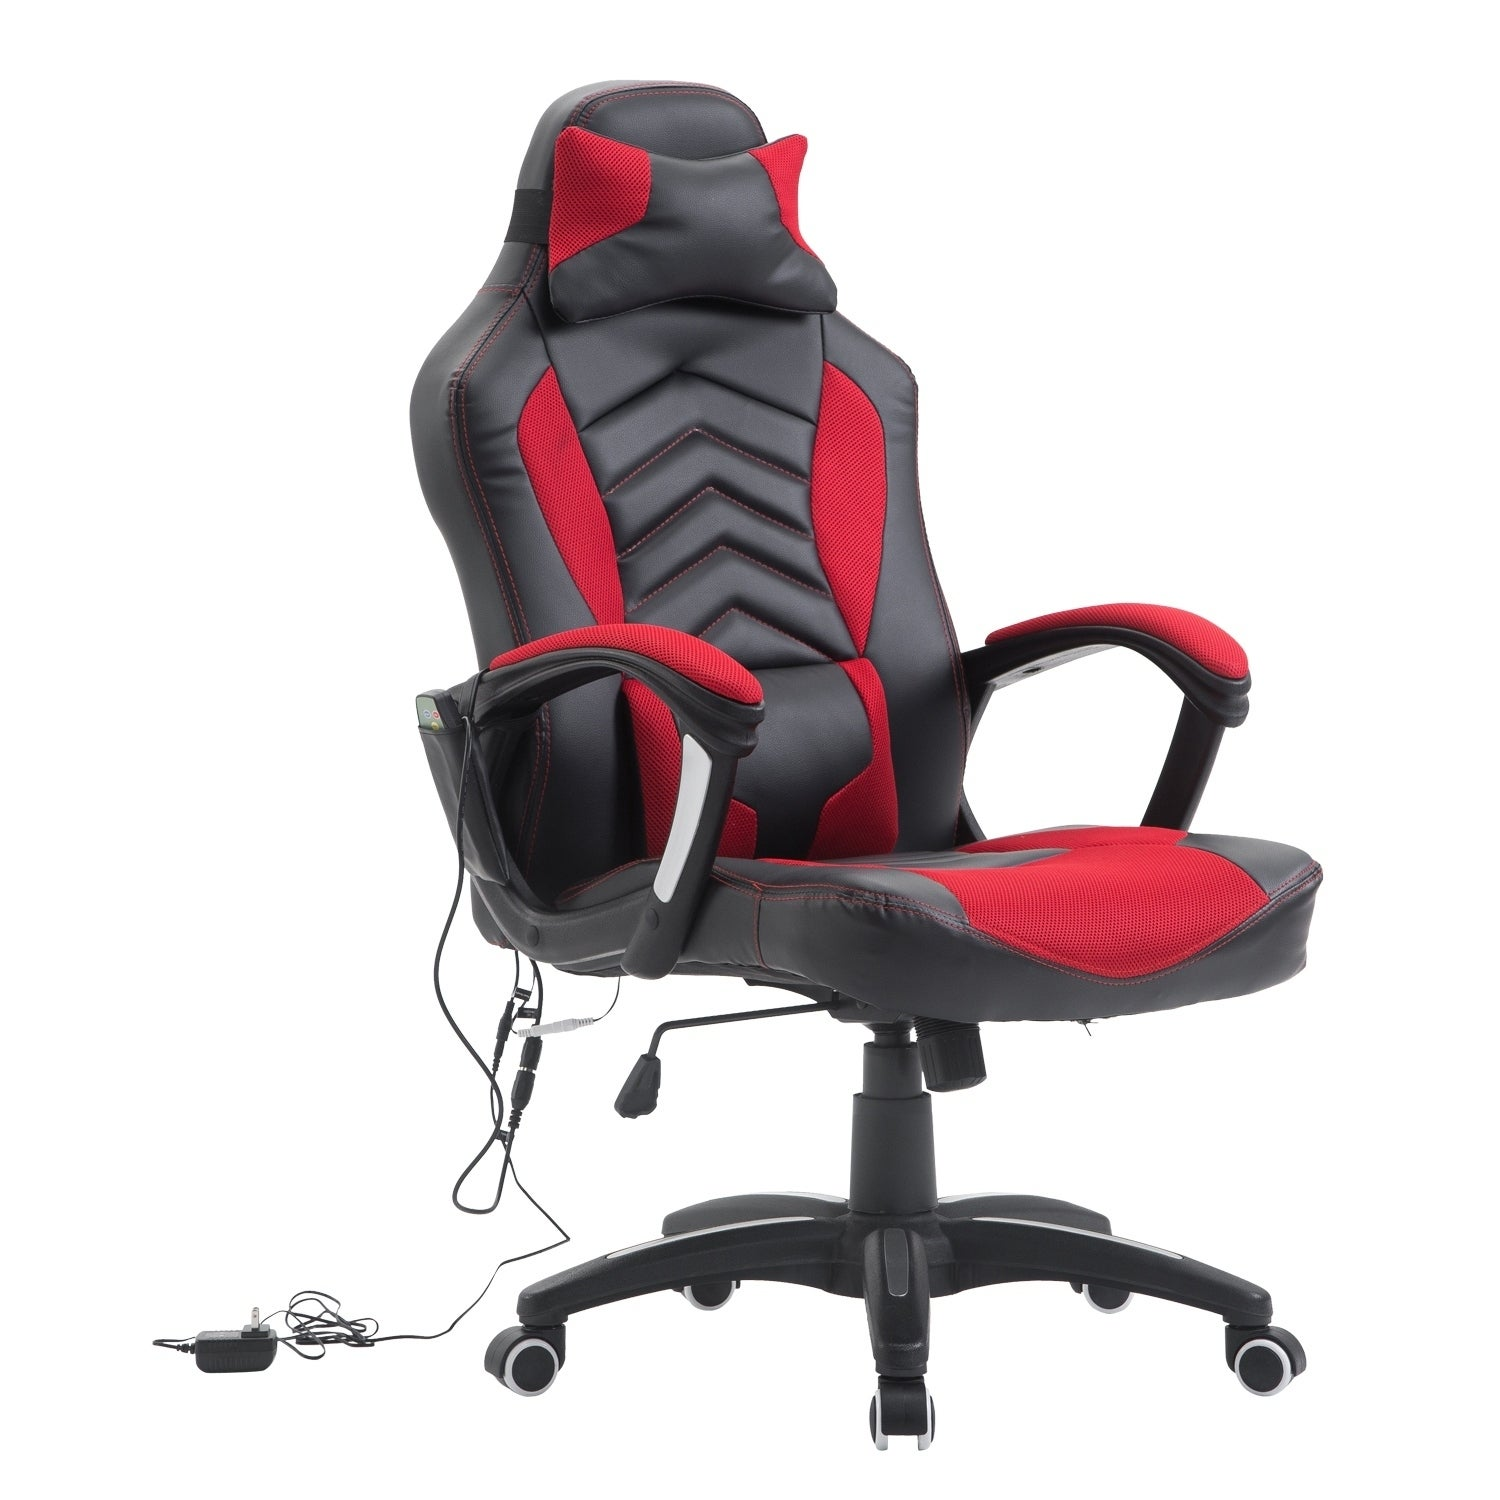 Homcom Modern Ergonomic Pu Leather Heated Vibrating Mage Office Chair Free Shipping Today 18012892